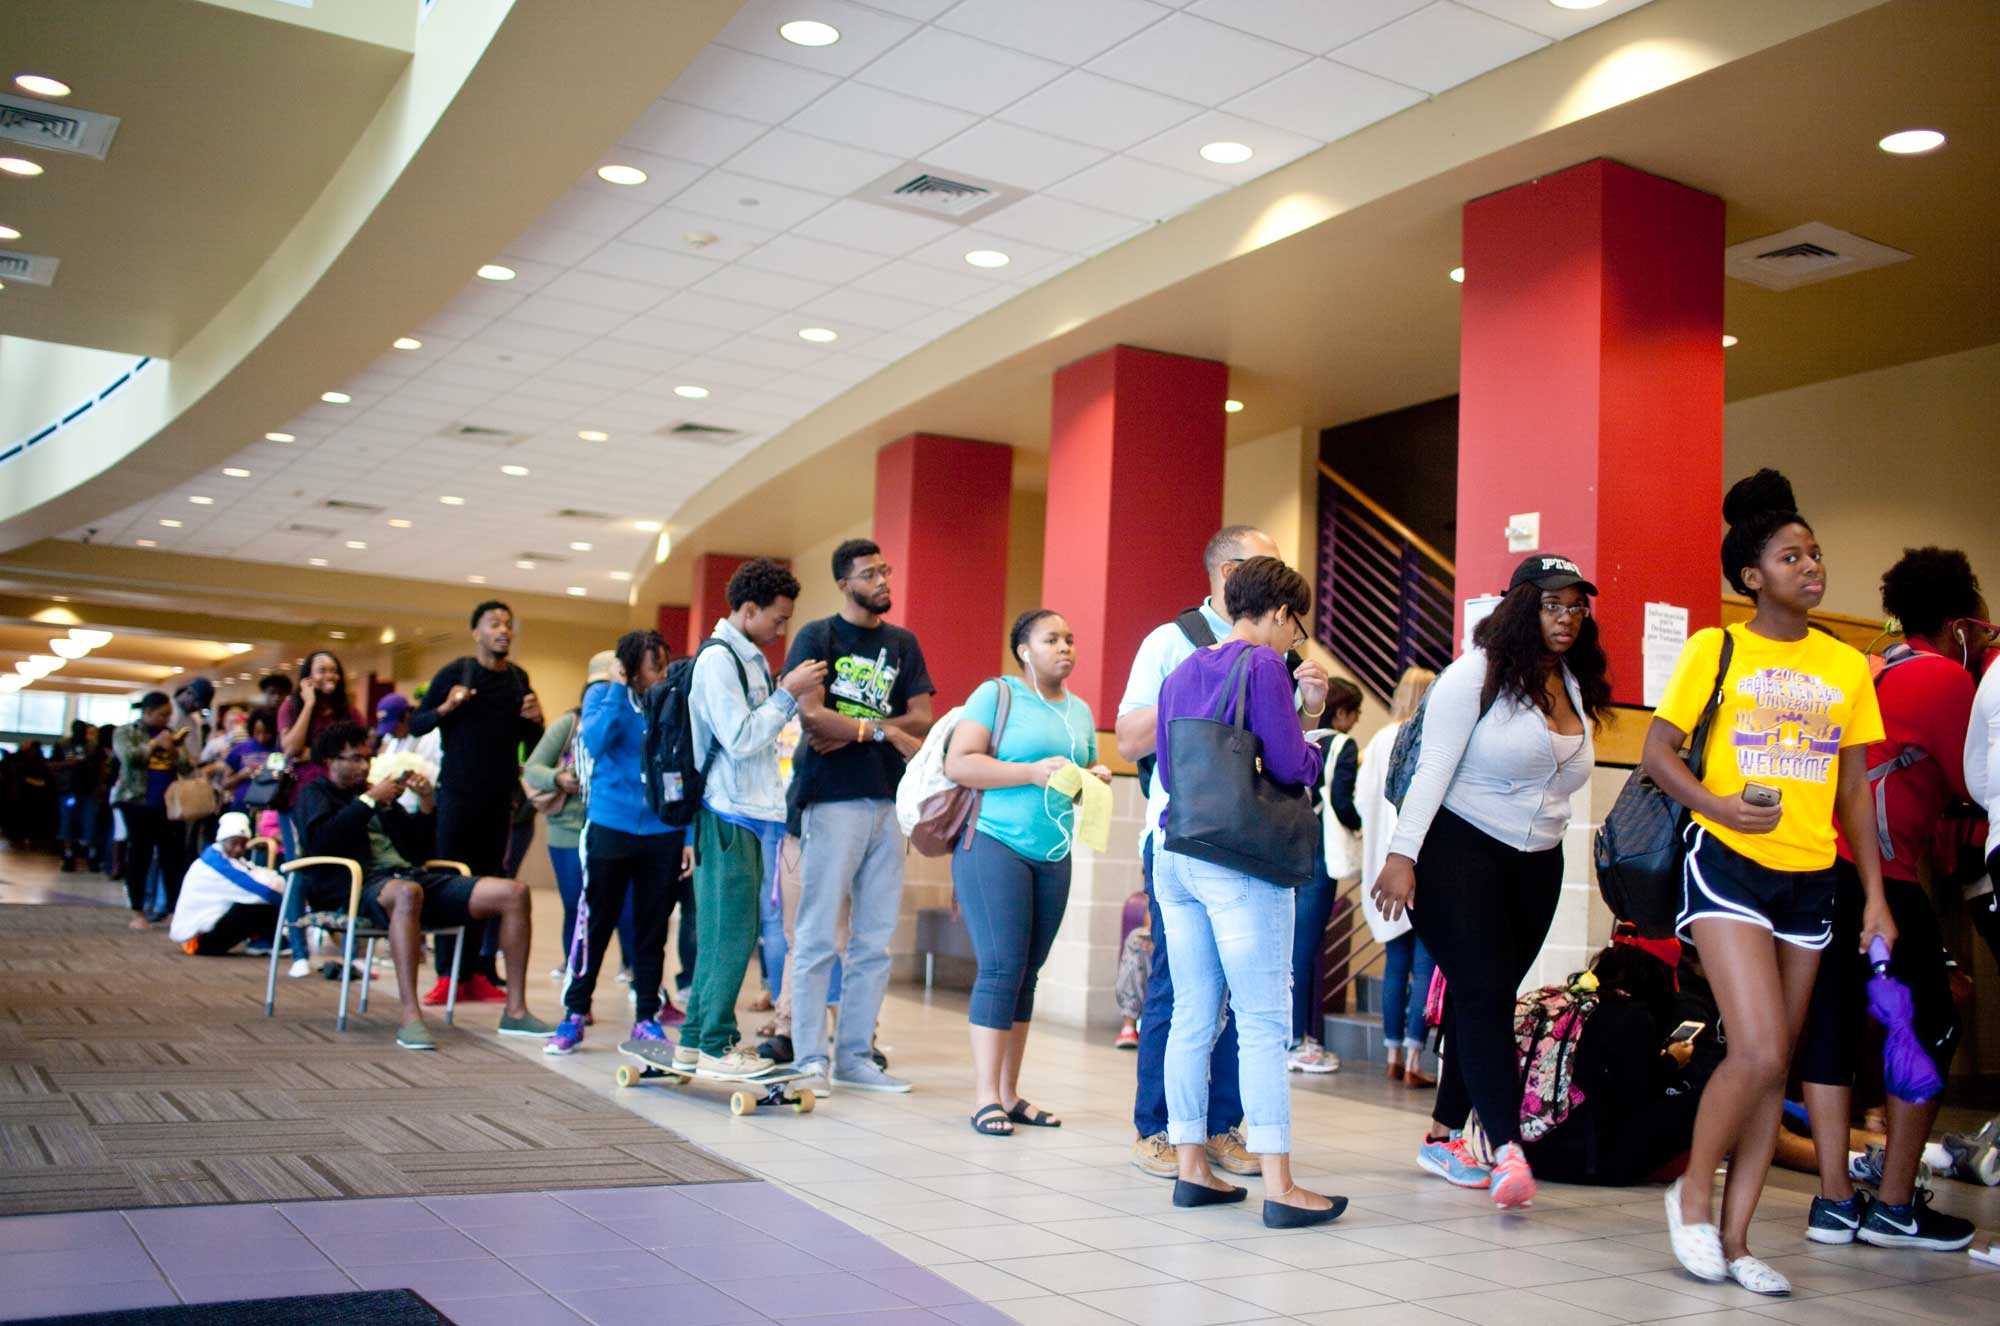 Students wait in line to vote at the Prairie View A&M University student center in 2016.